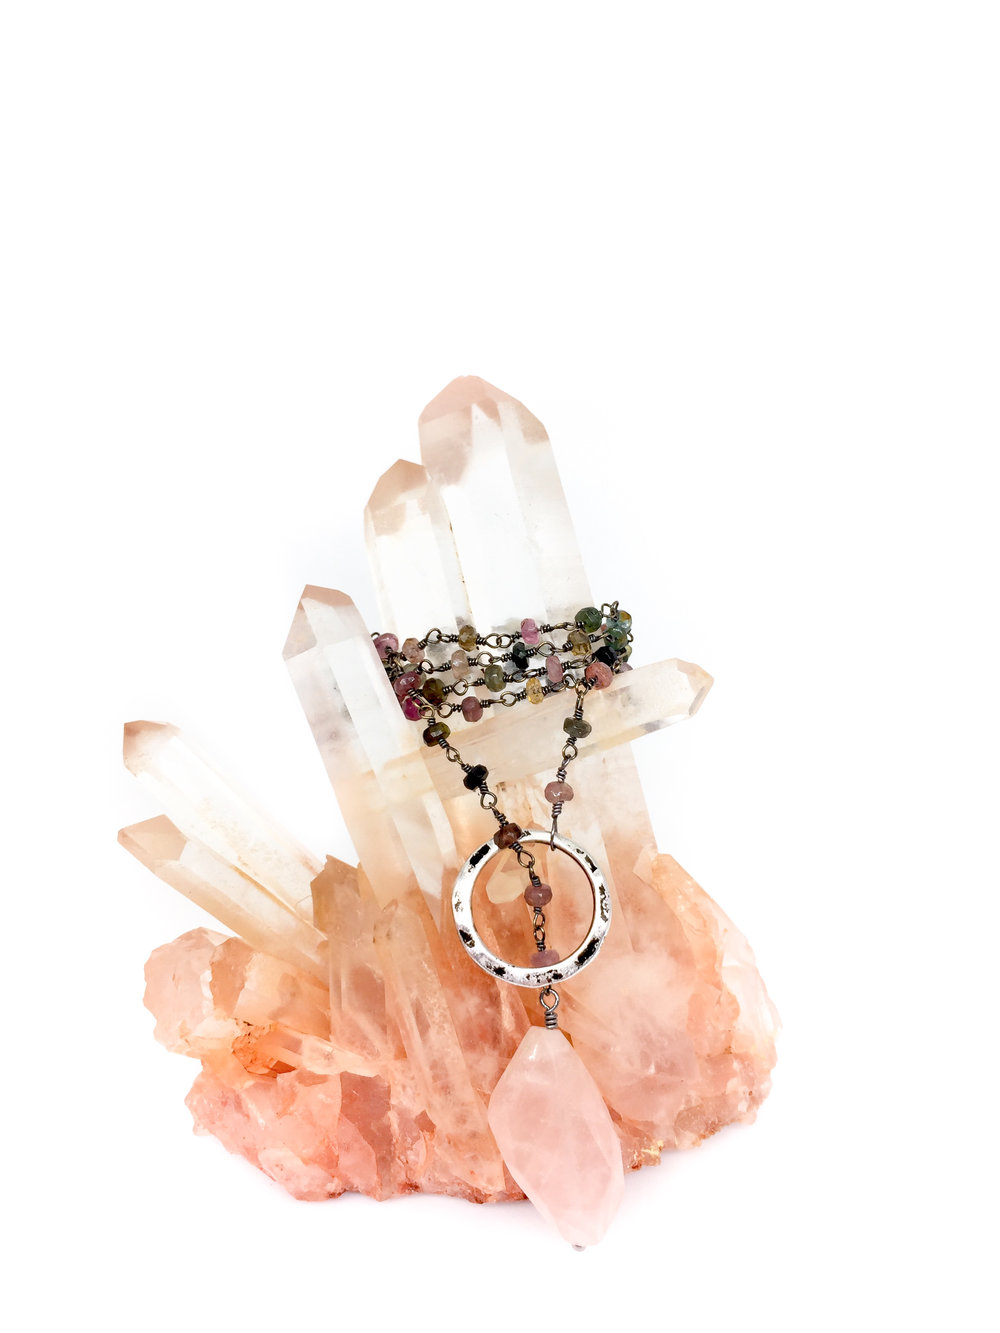 Sometimes we just need a little extra something... - Take a look at the curated collections based on the healing properties of crystals.